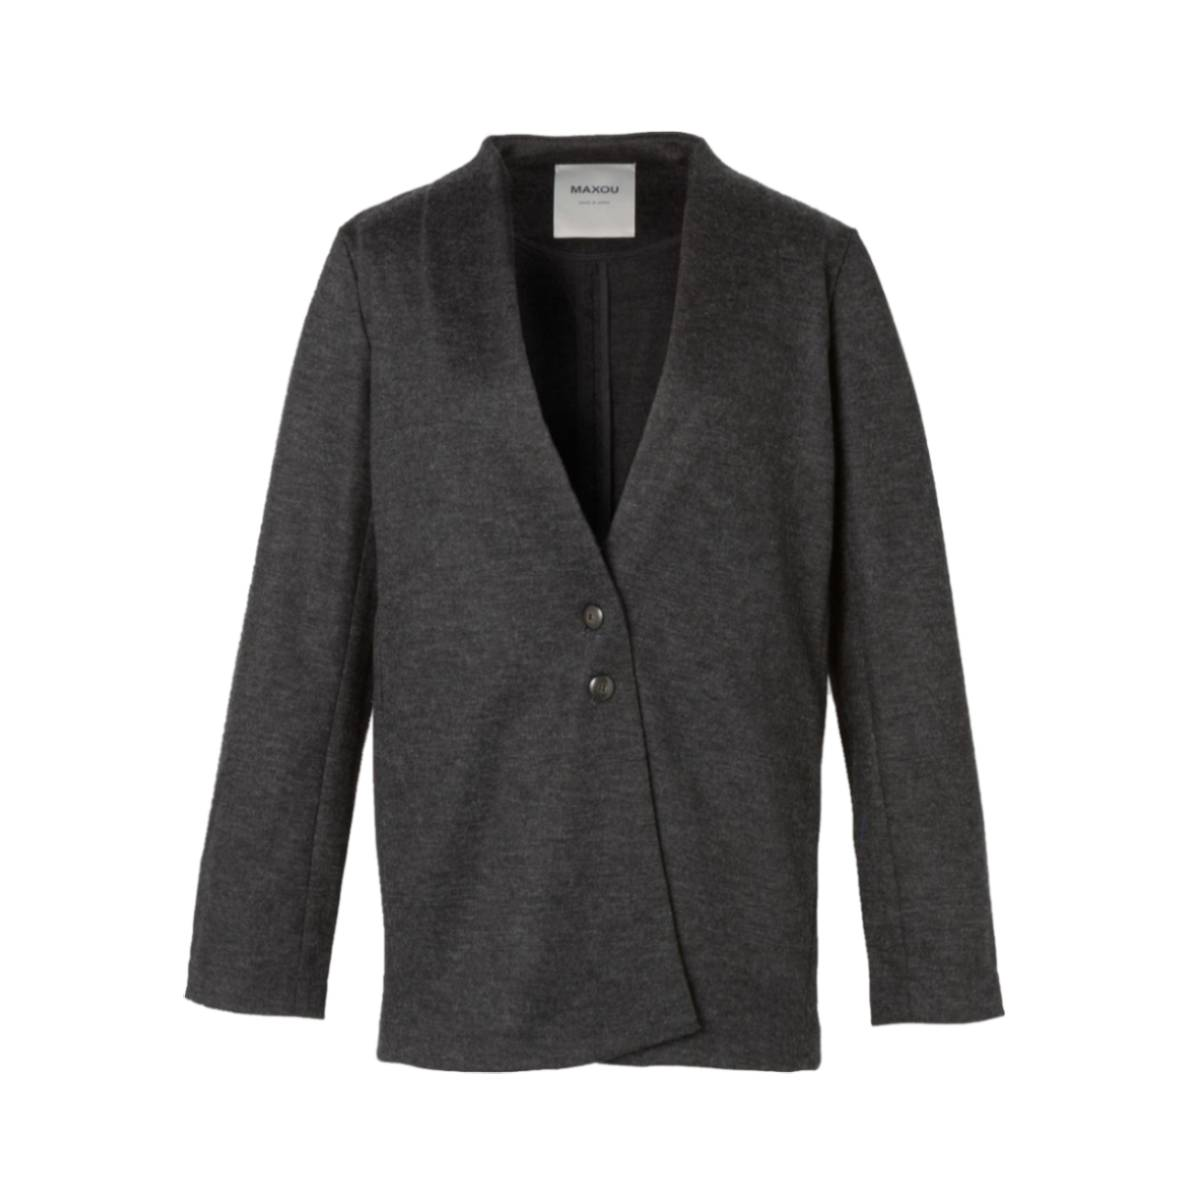 [50%OFF]MAXOU[マクゾゥ] MA492-9-0924-08CHARCOAL カットソー チャコール セットアップ,